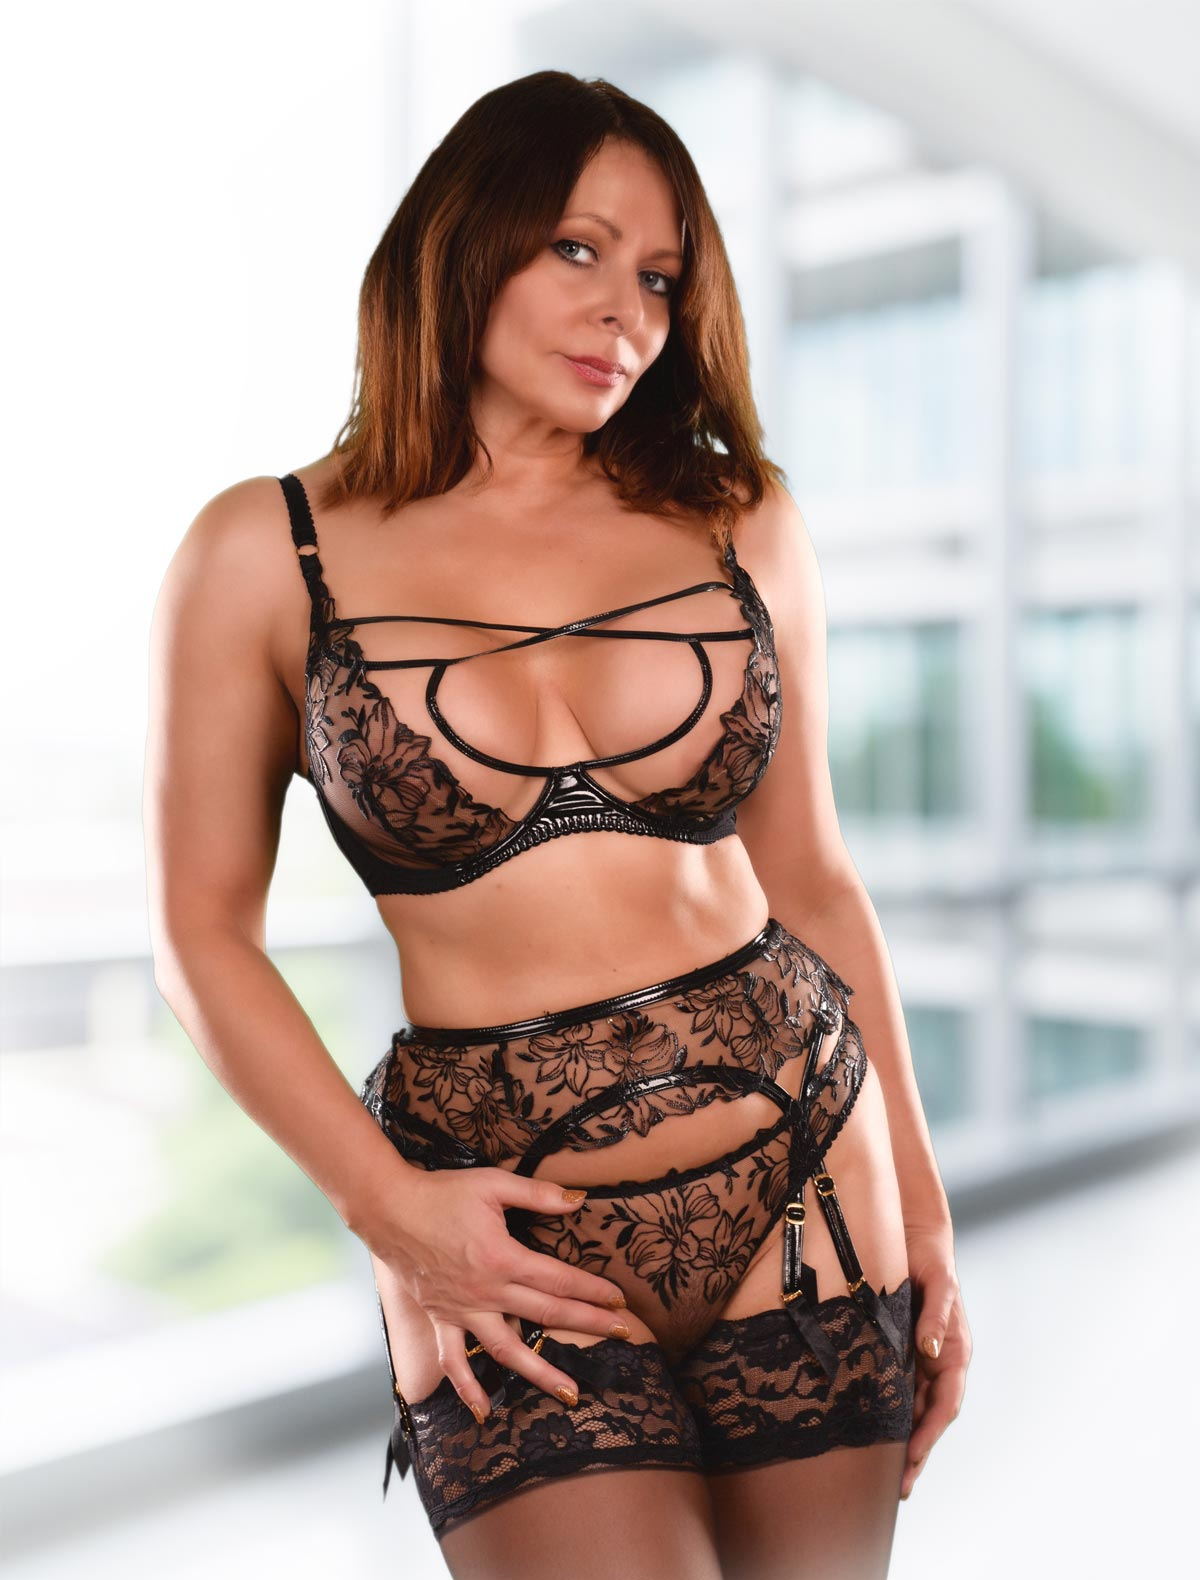 Carly Escort Online Sessions